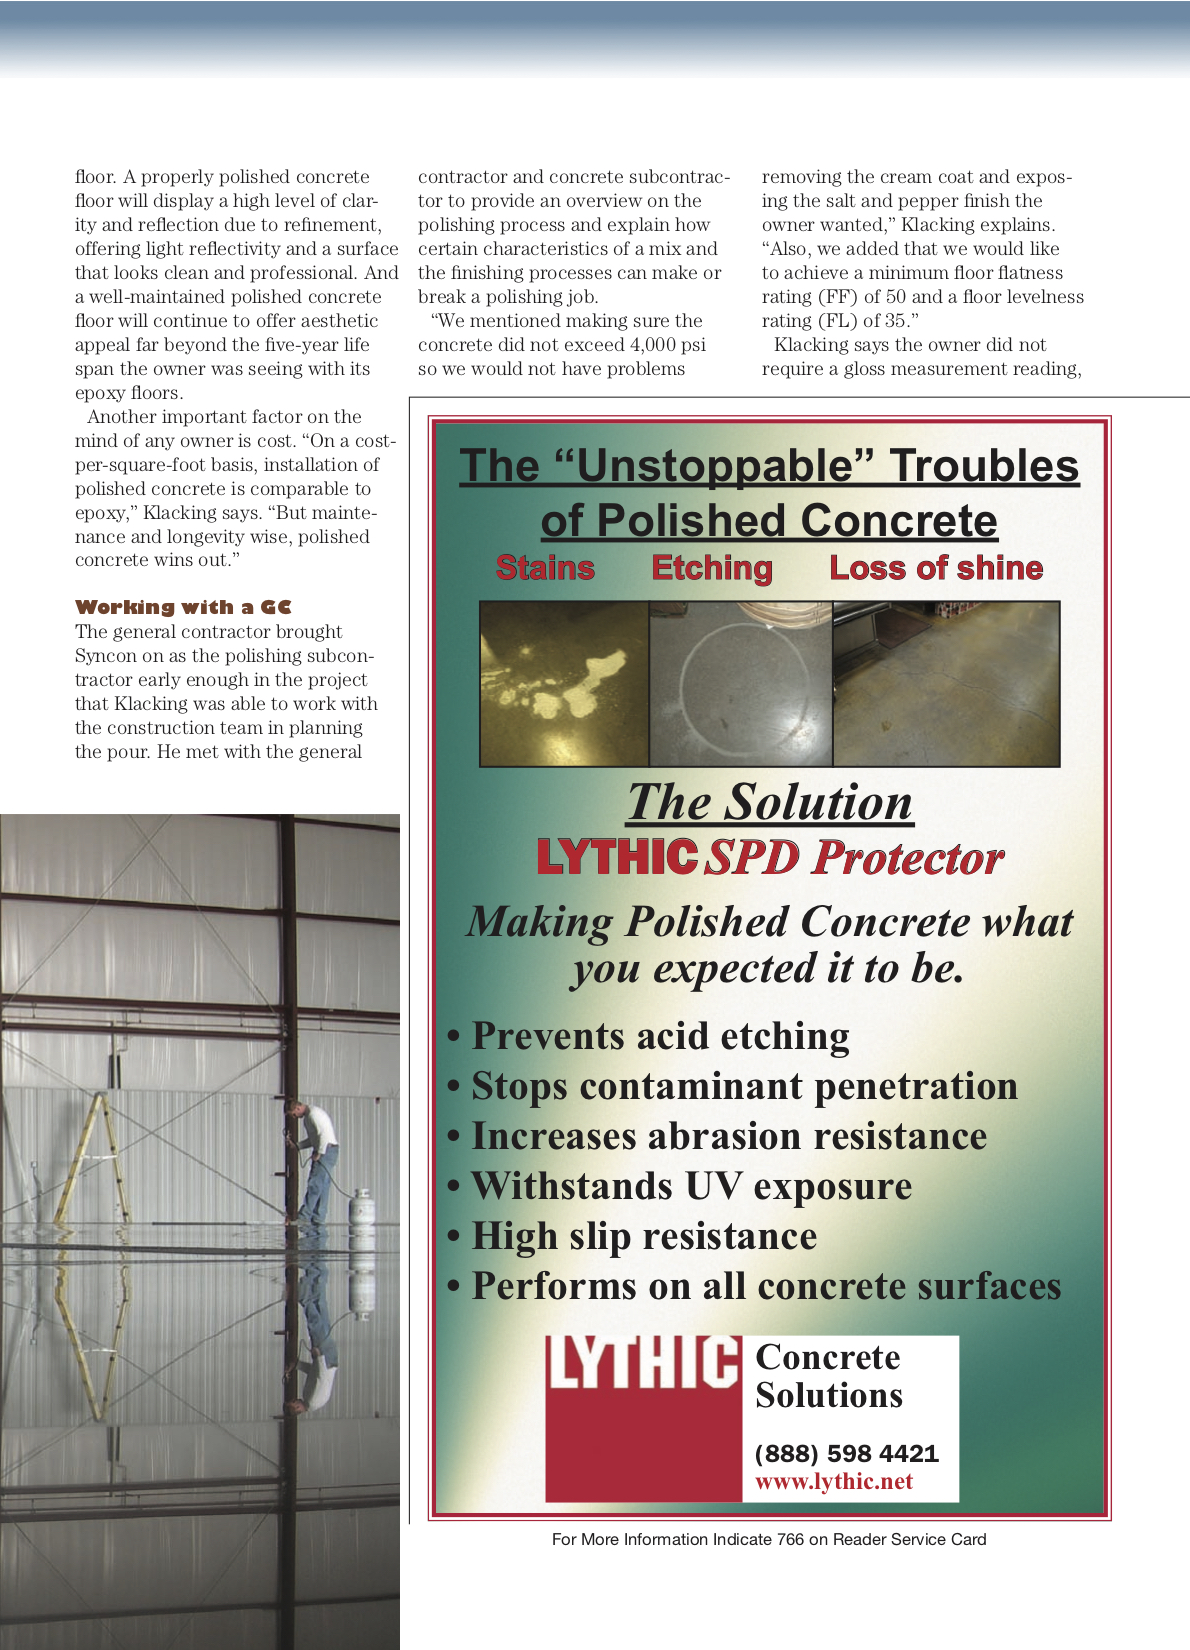 Syncon Featured in Polishing Contractor Magazine Premier Addition3